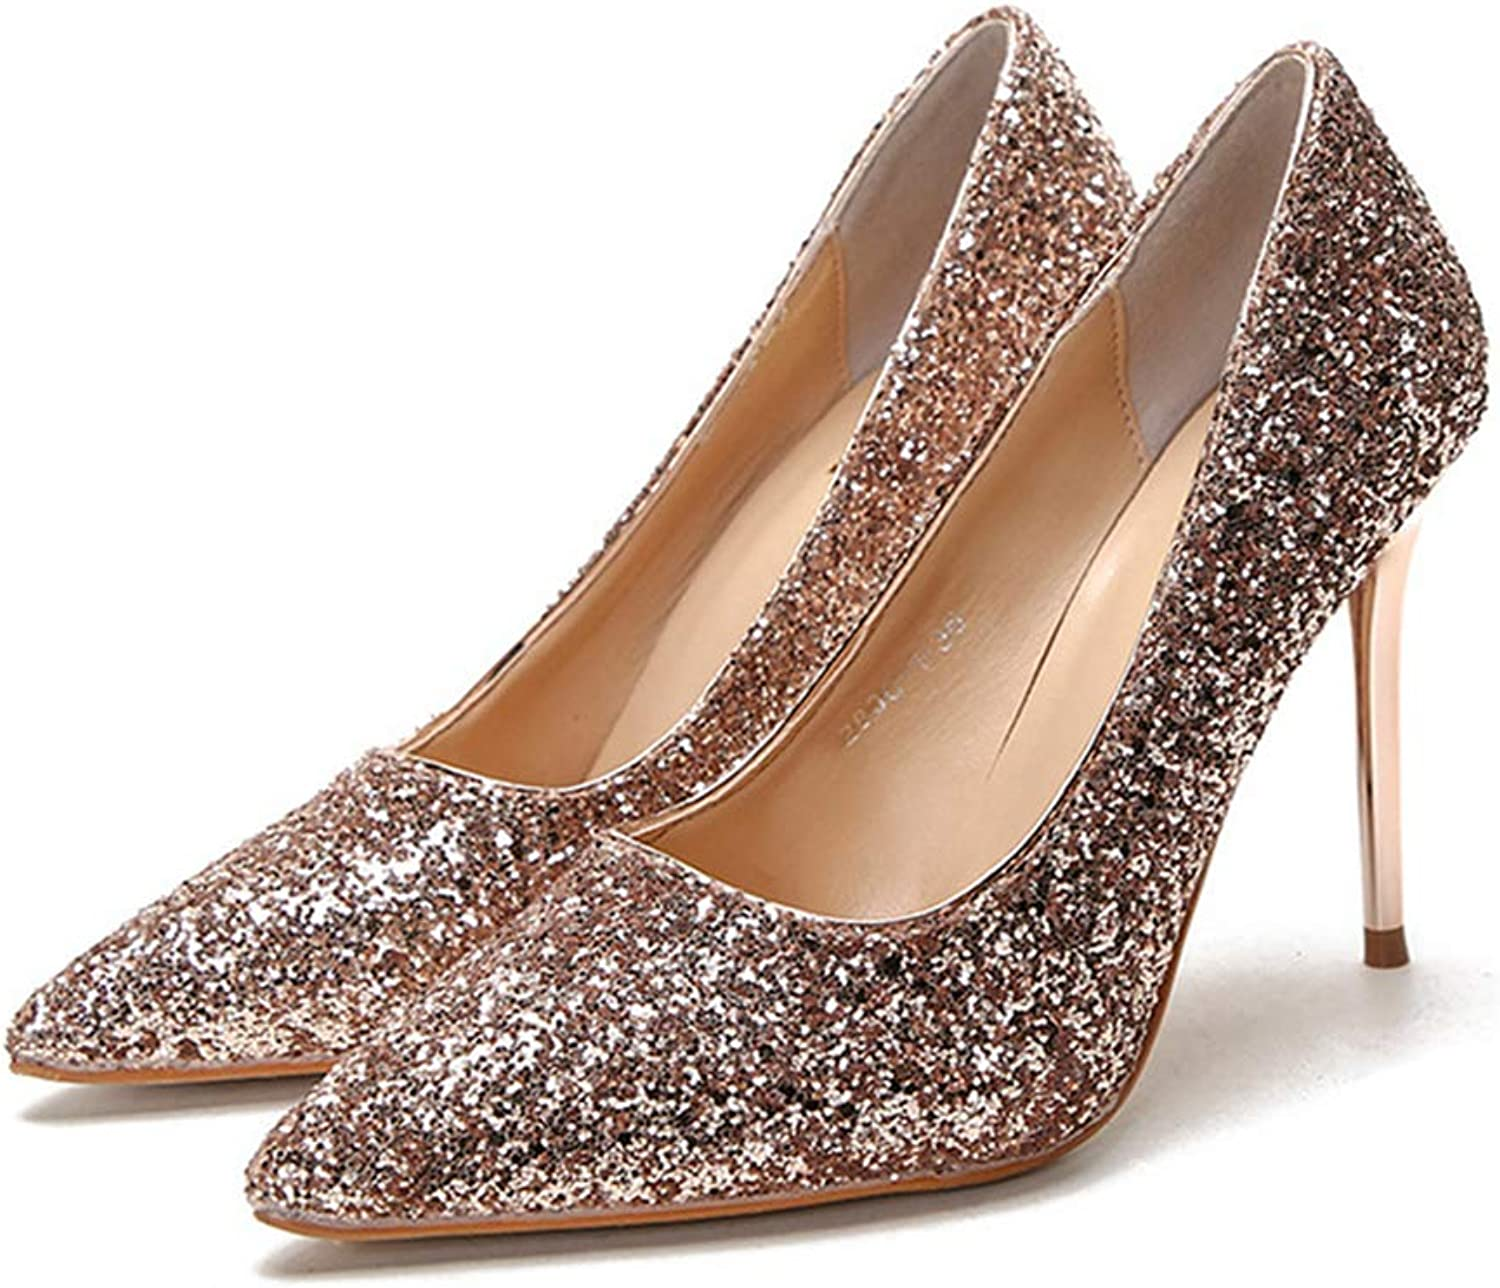 Sam Carle Womens Pumps,High Thin Heel Sexy Bling Sequined Rhinestone Nightclub Pump